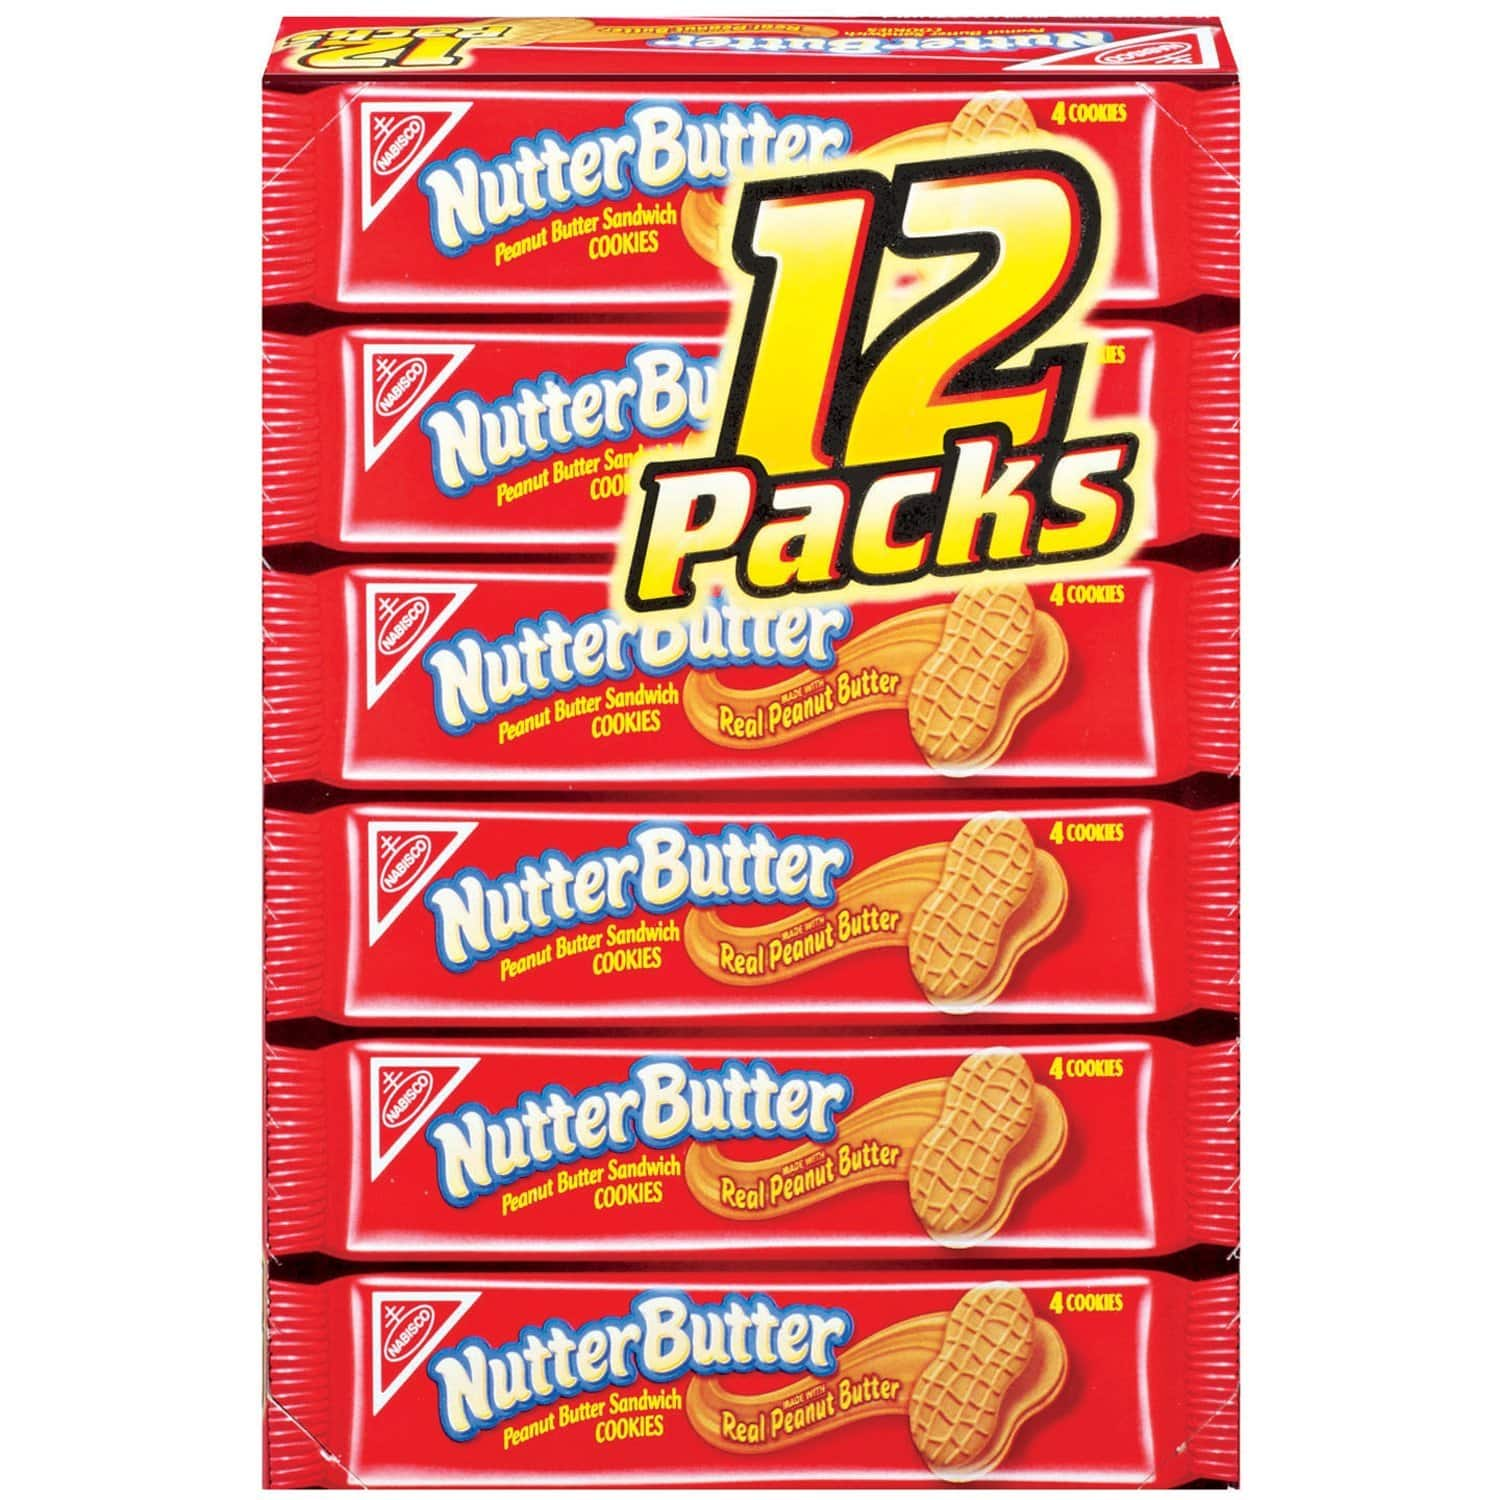 Nabisco Nutter Butter Cookies, Pack of 12, 22.8 oz $4.45 w/S&S@amazon add on item